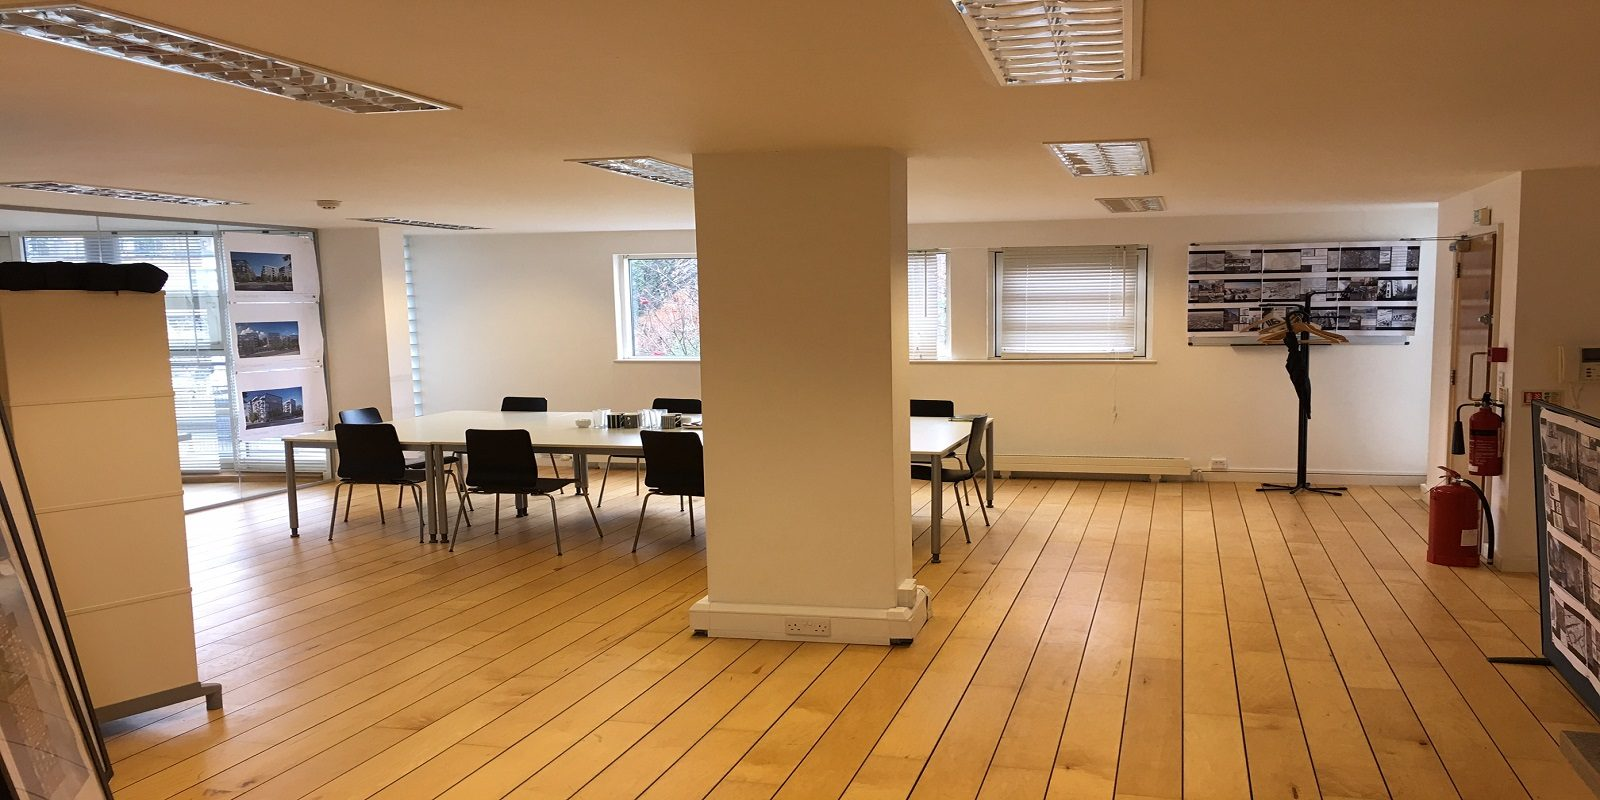 STUDIO / OFFICE TO LET IN CAMDEN TOWN